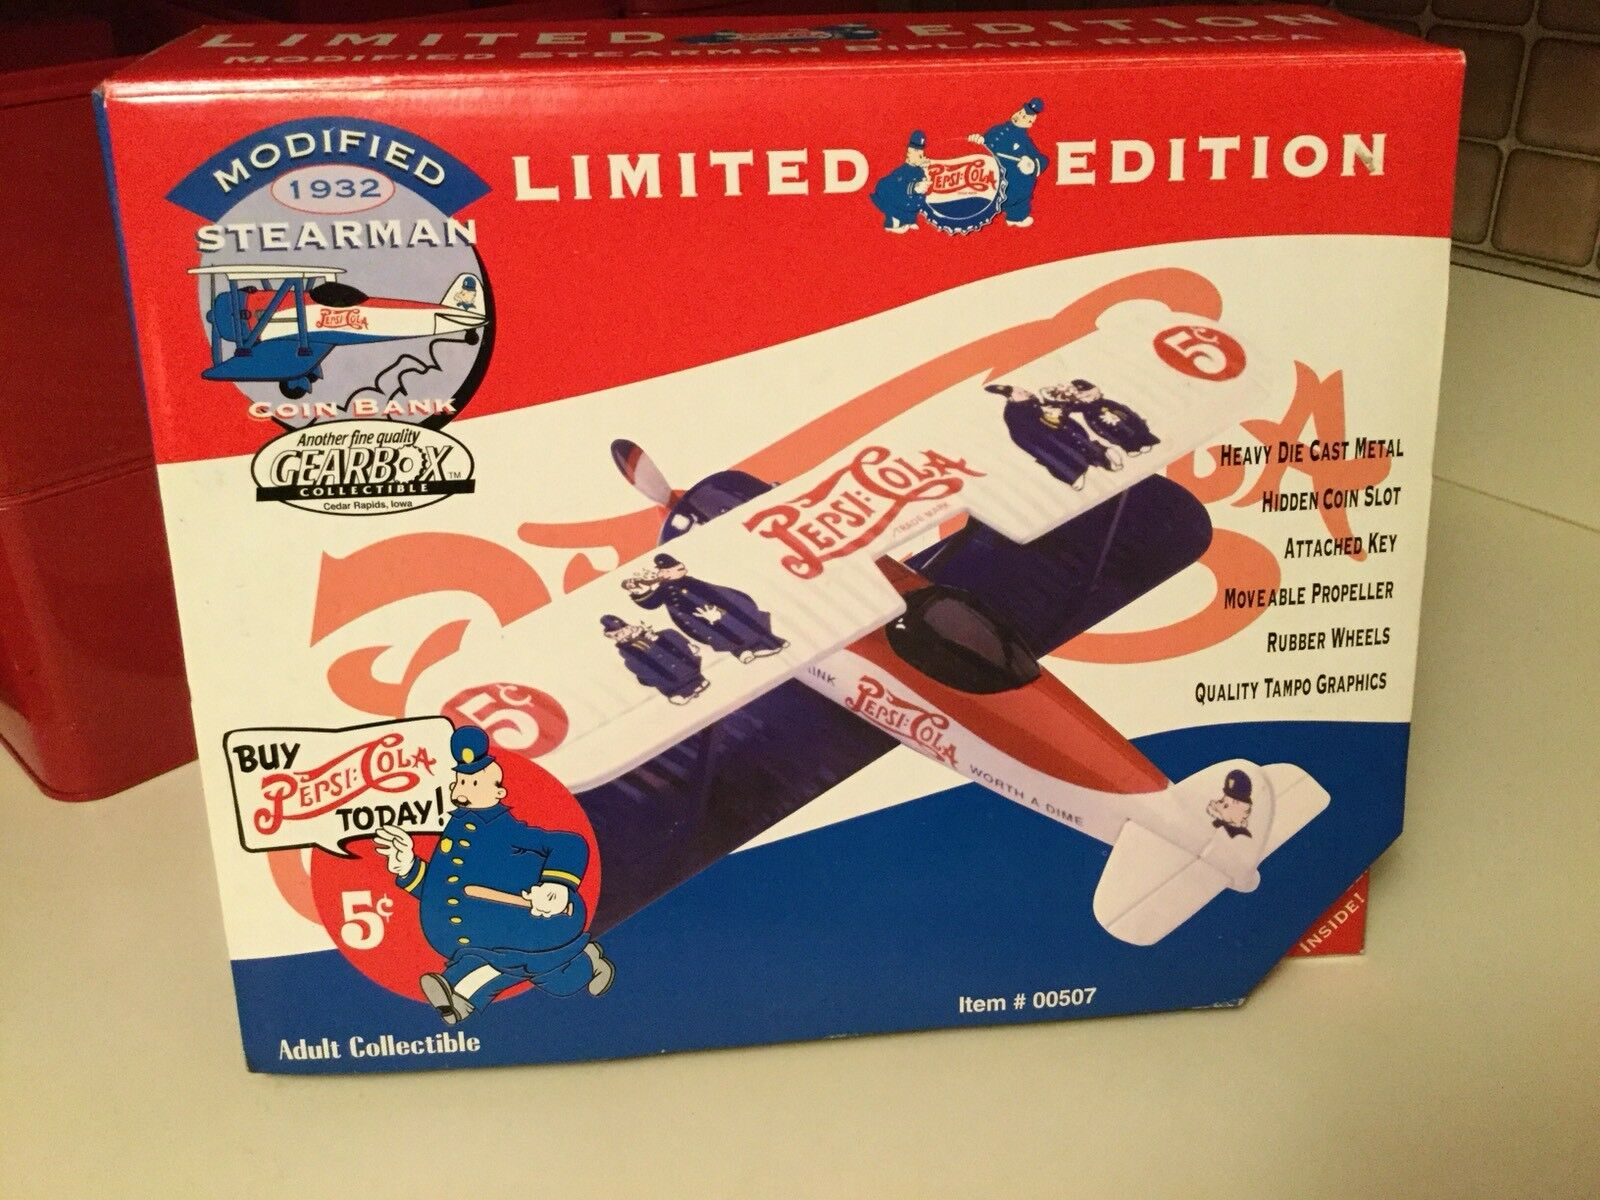 96 Gear BOX--Diecast Airplane--Limited Edition Pepsi Cola 1932 Stearman Biplane Biplane Biplane cc354f